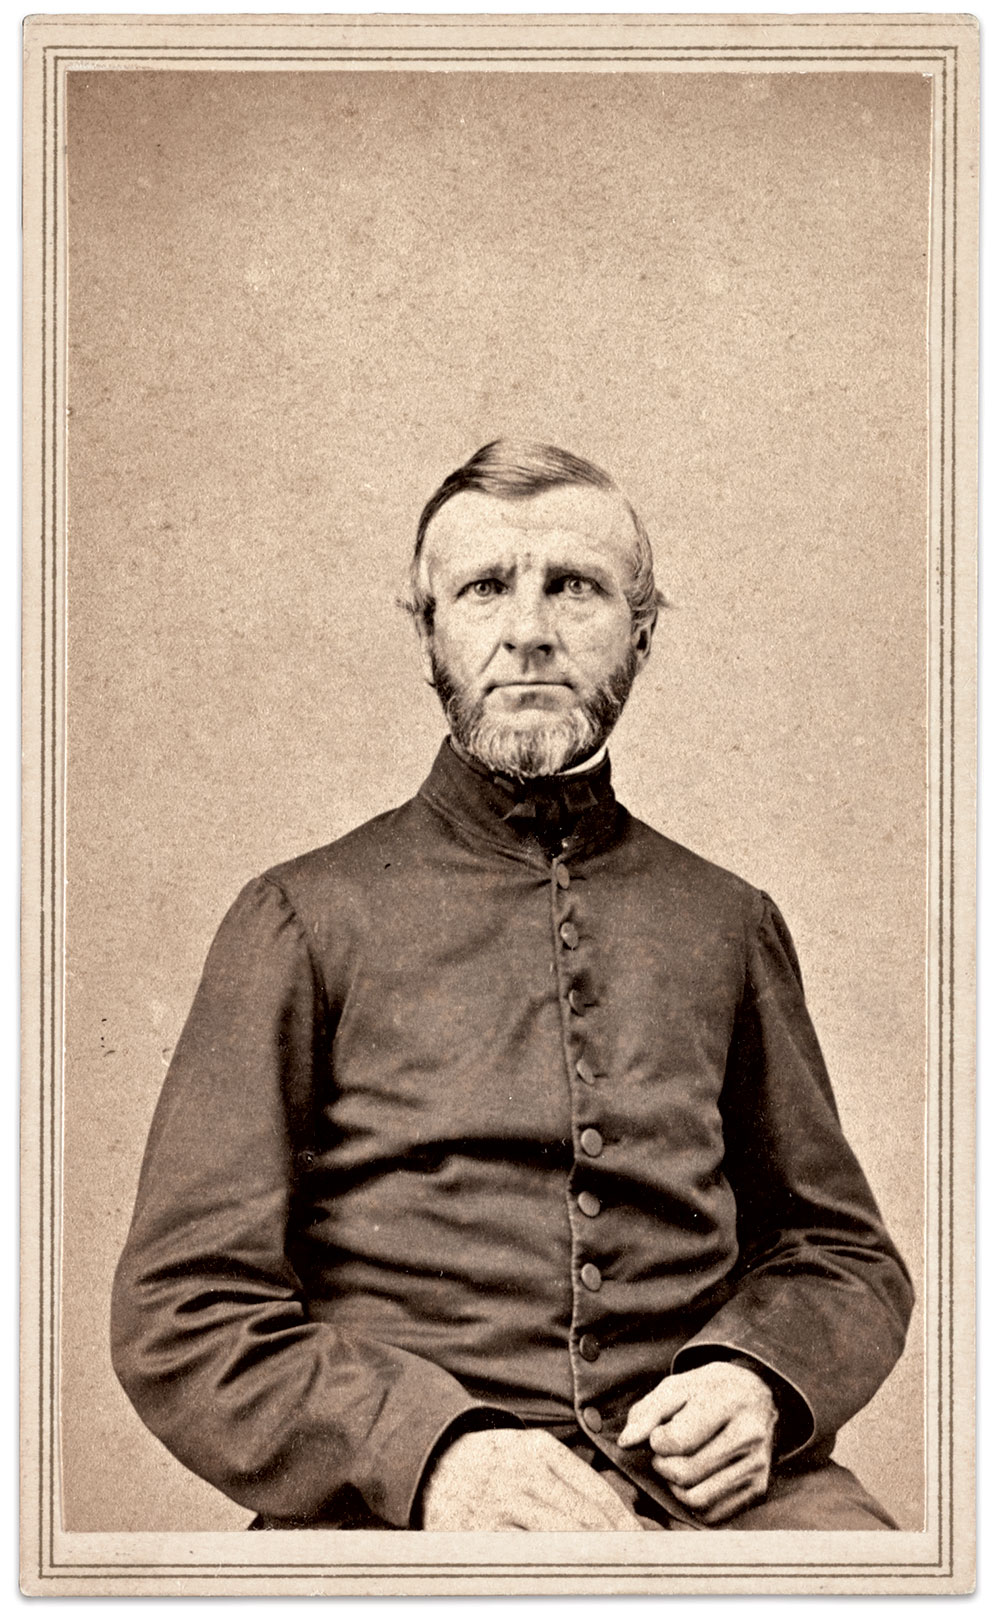 Carte de visite by an anonymous photographer. The Liljenquist Family Collection, Library of Congress.